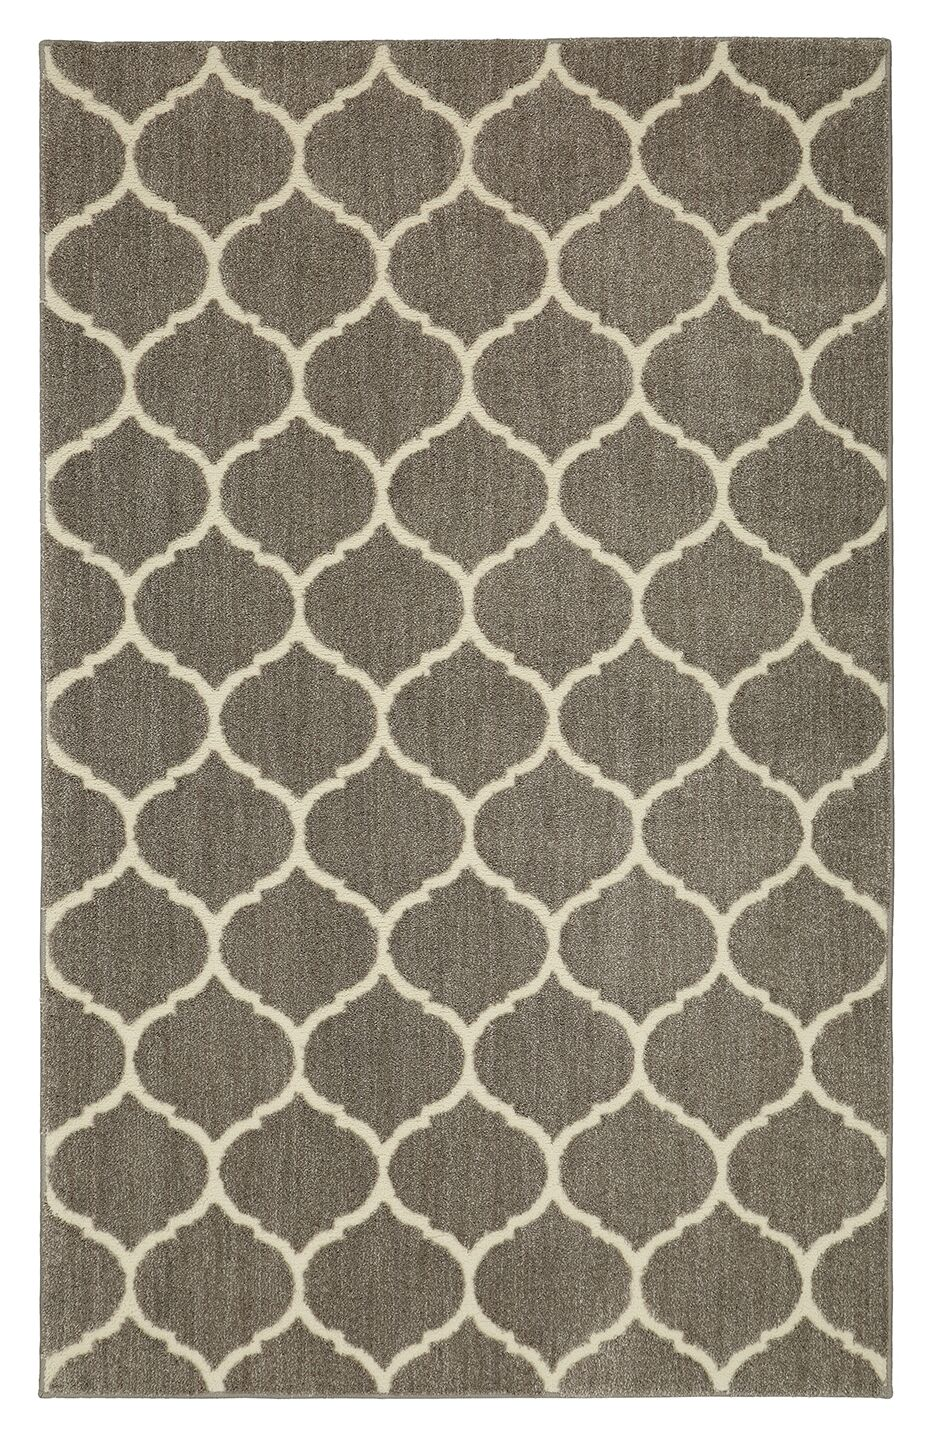 Kalispell Gray Area Rug Rug Size: Rectangle 8' x 10'